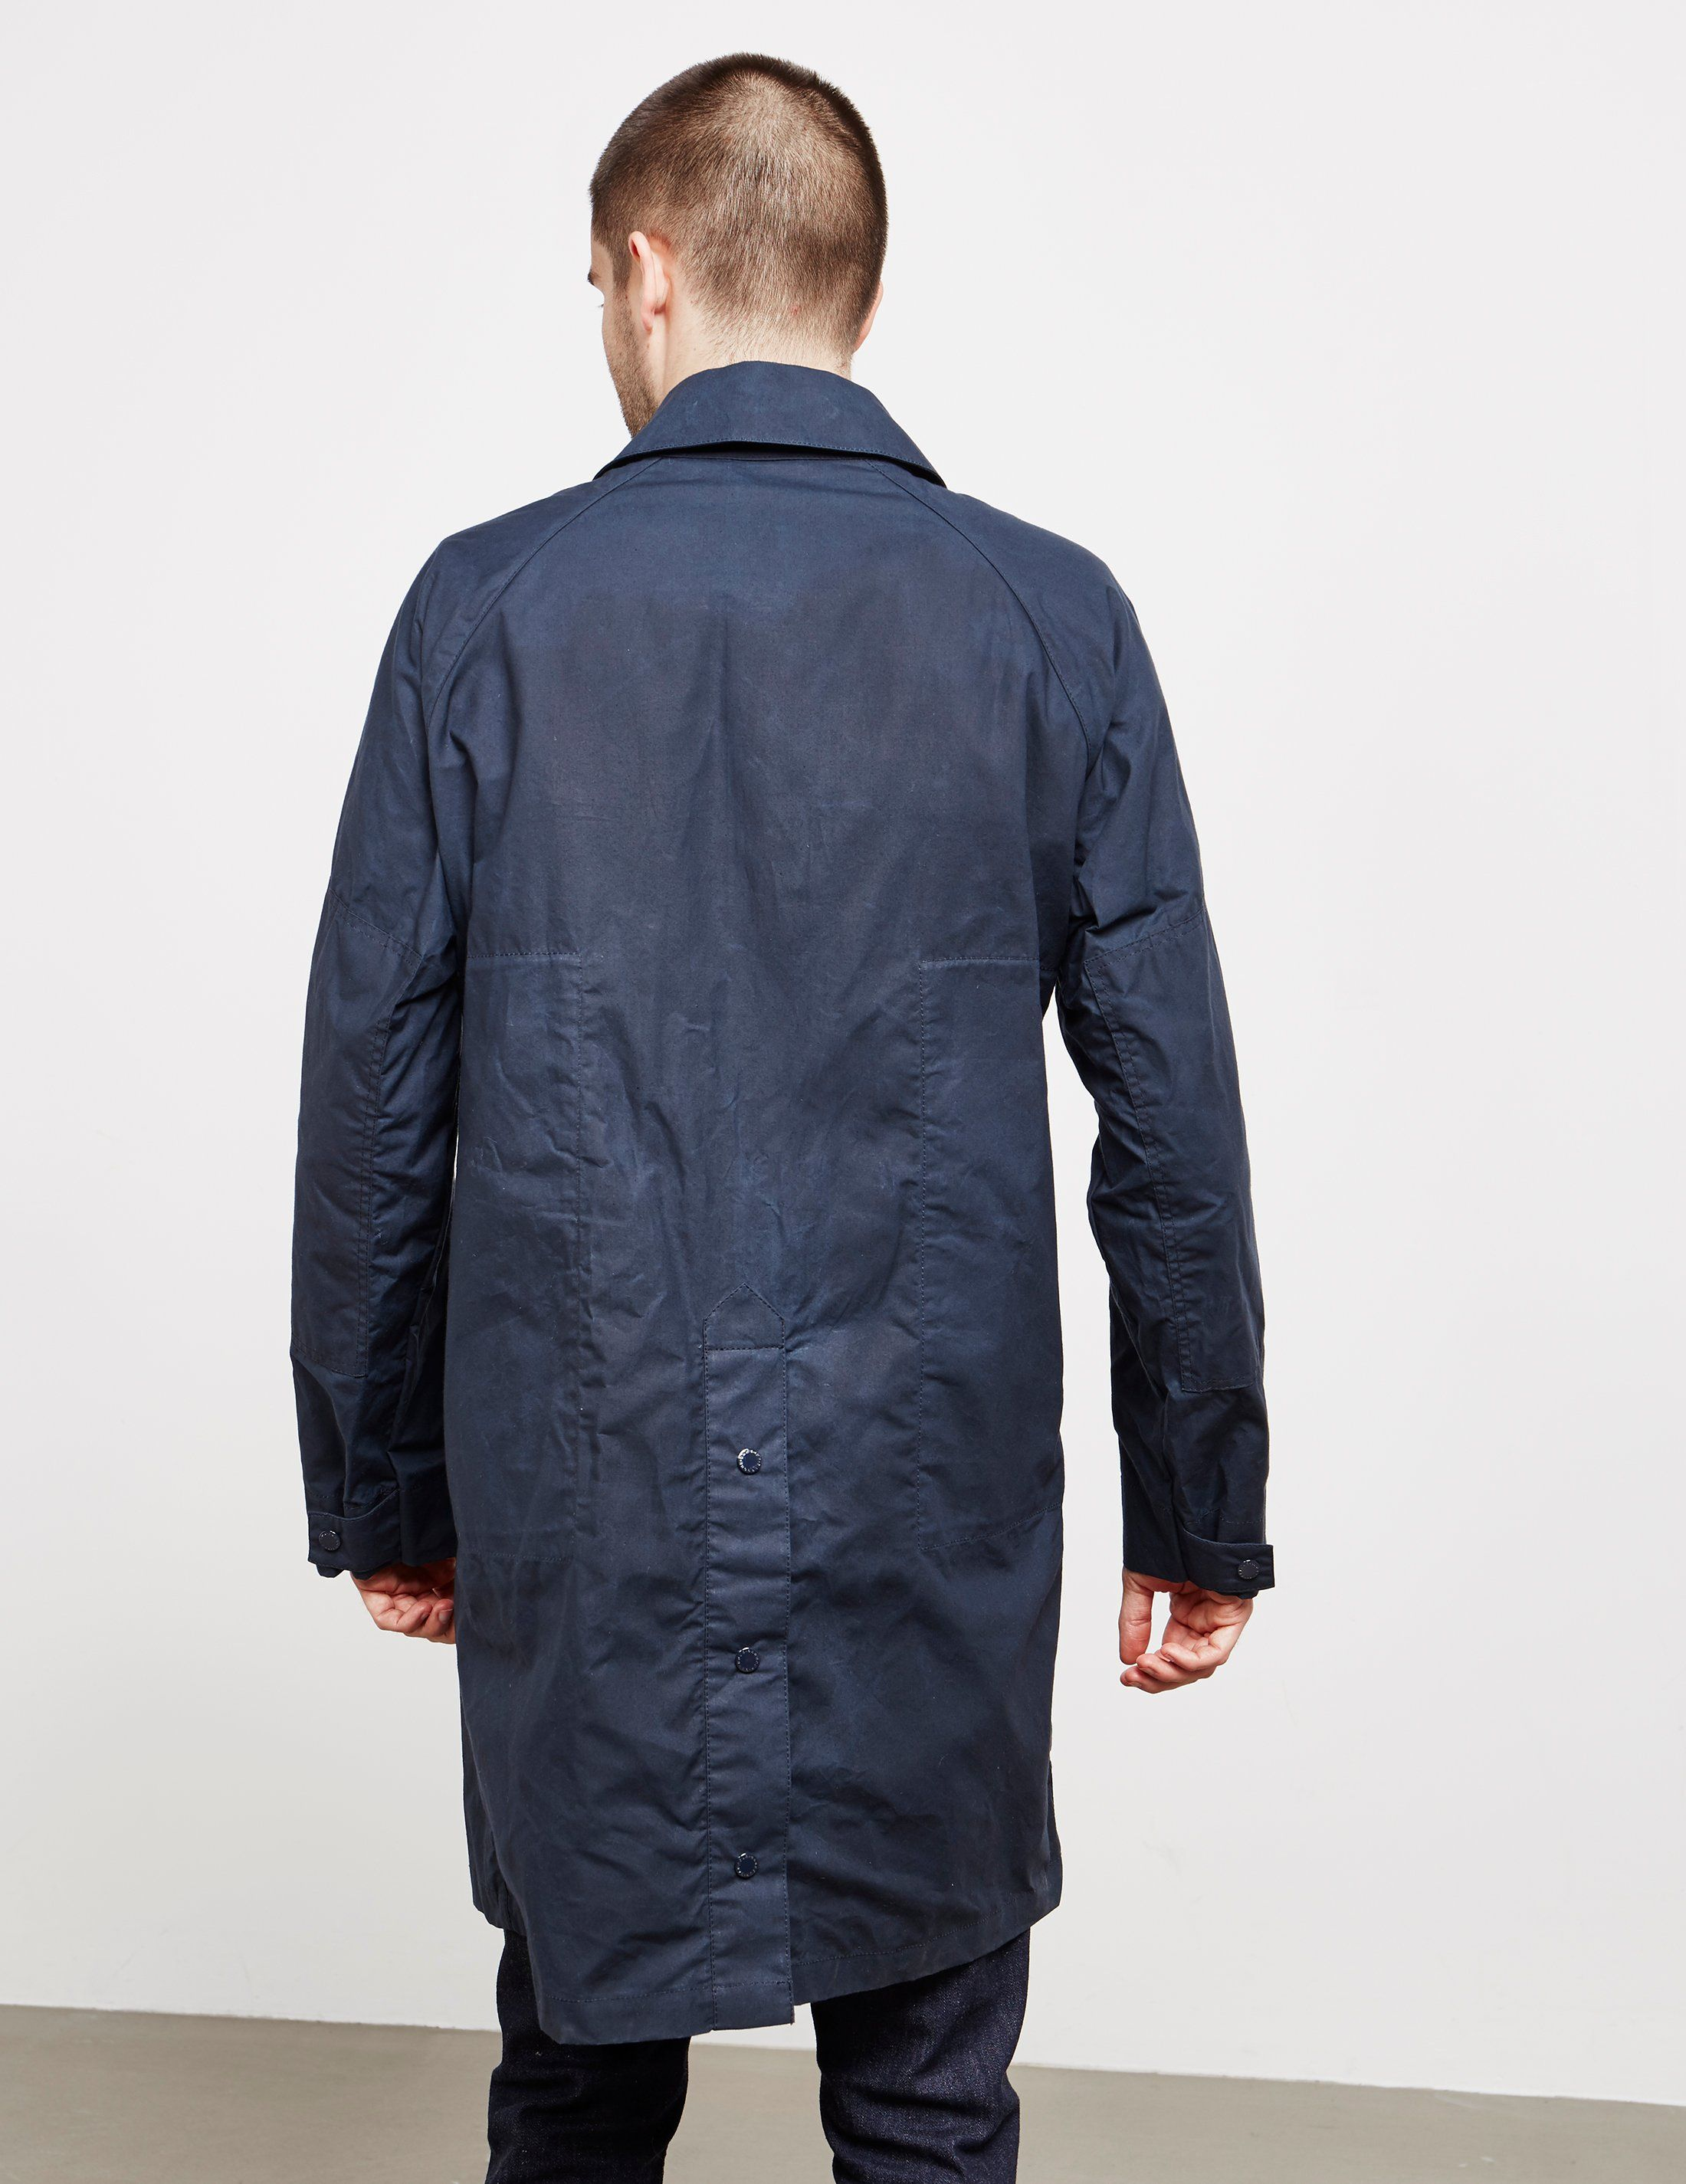 Barbour x Engineered Garments South Overcoat